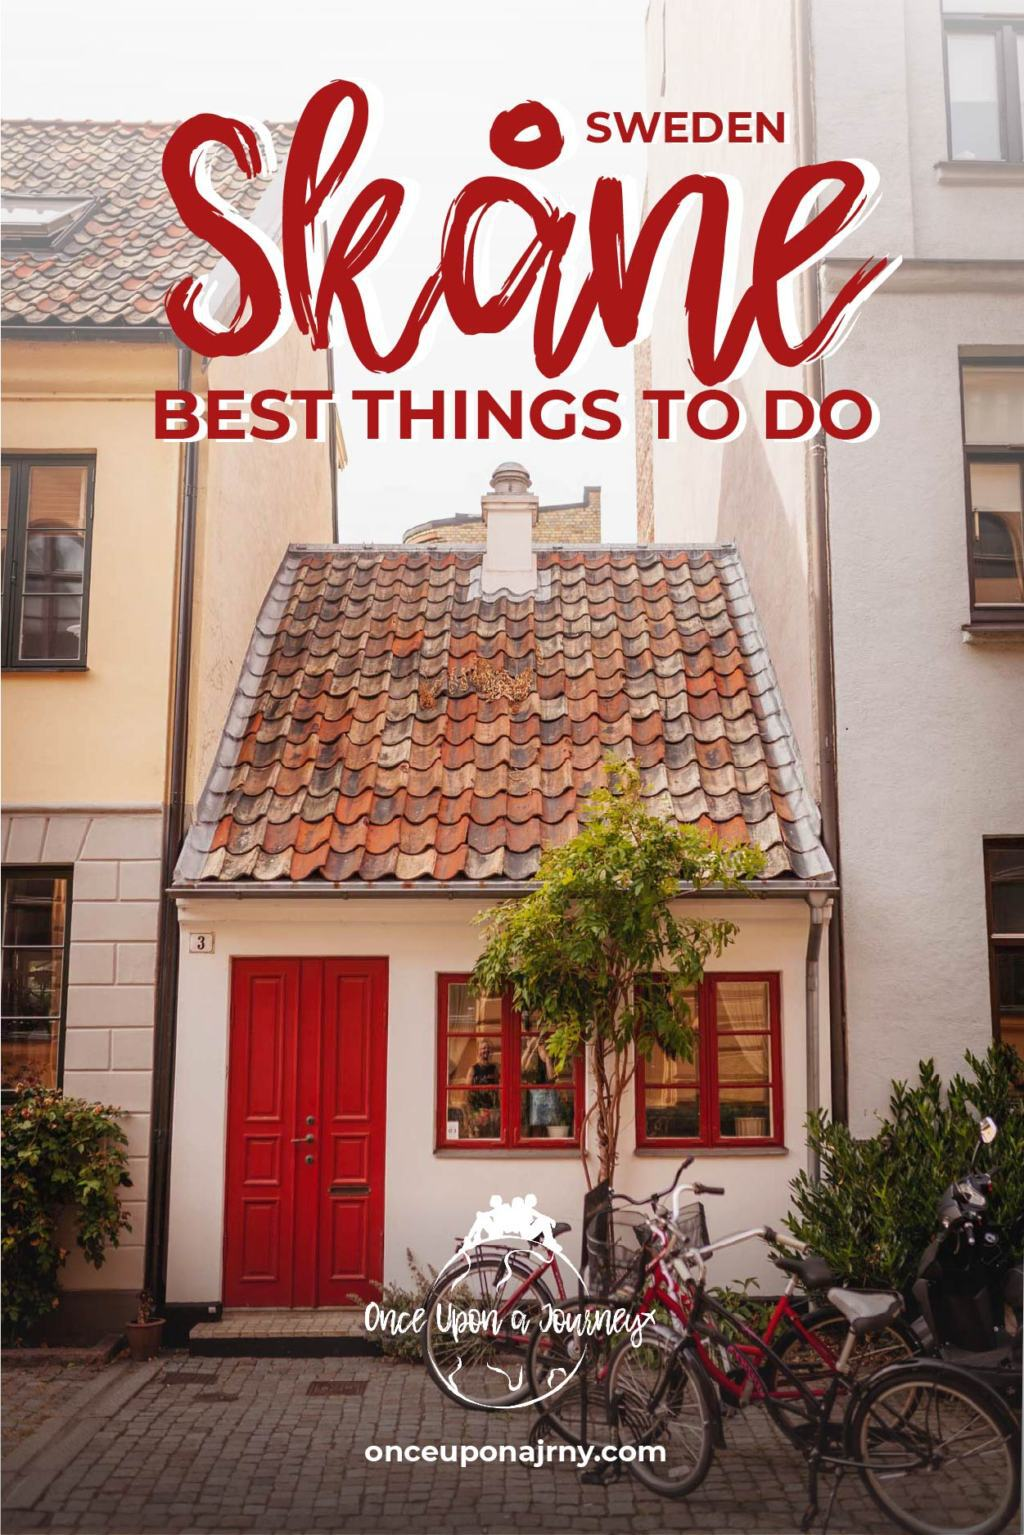 Skåne Sweden, Best Things to Do in